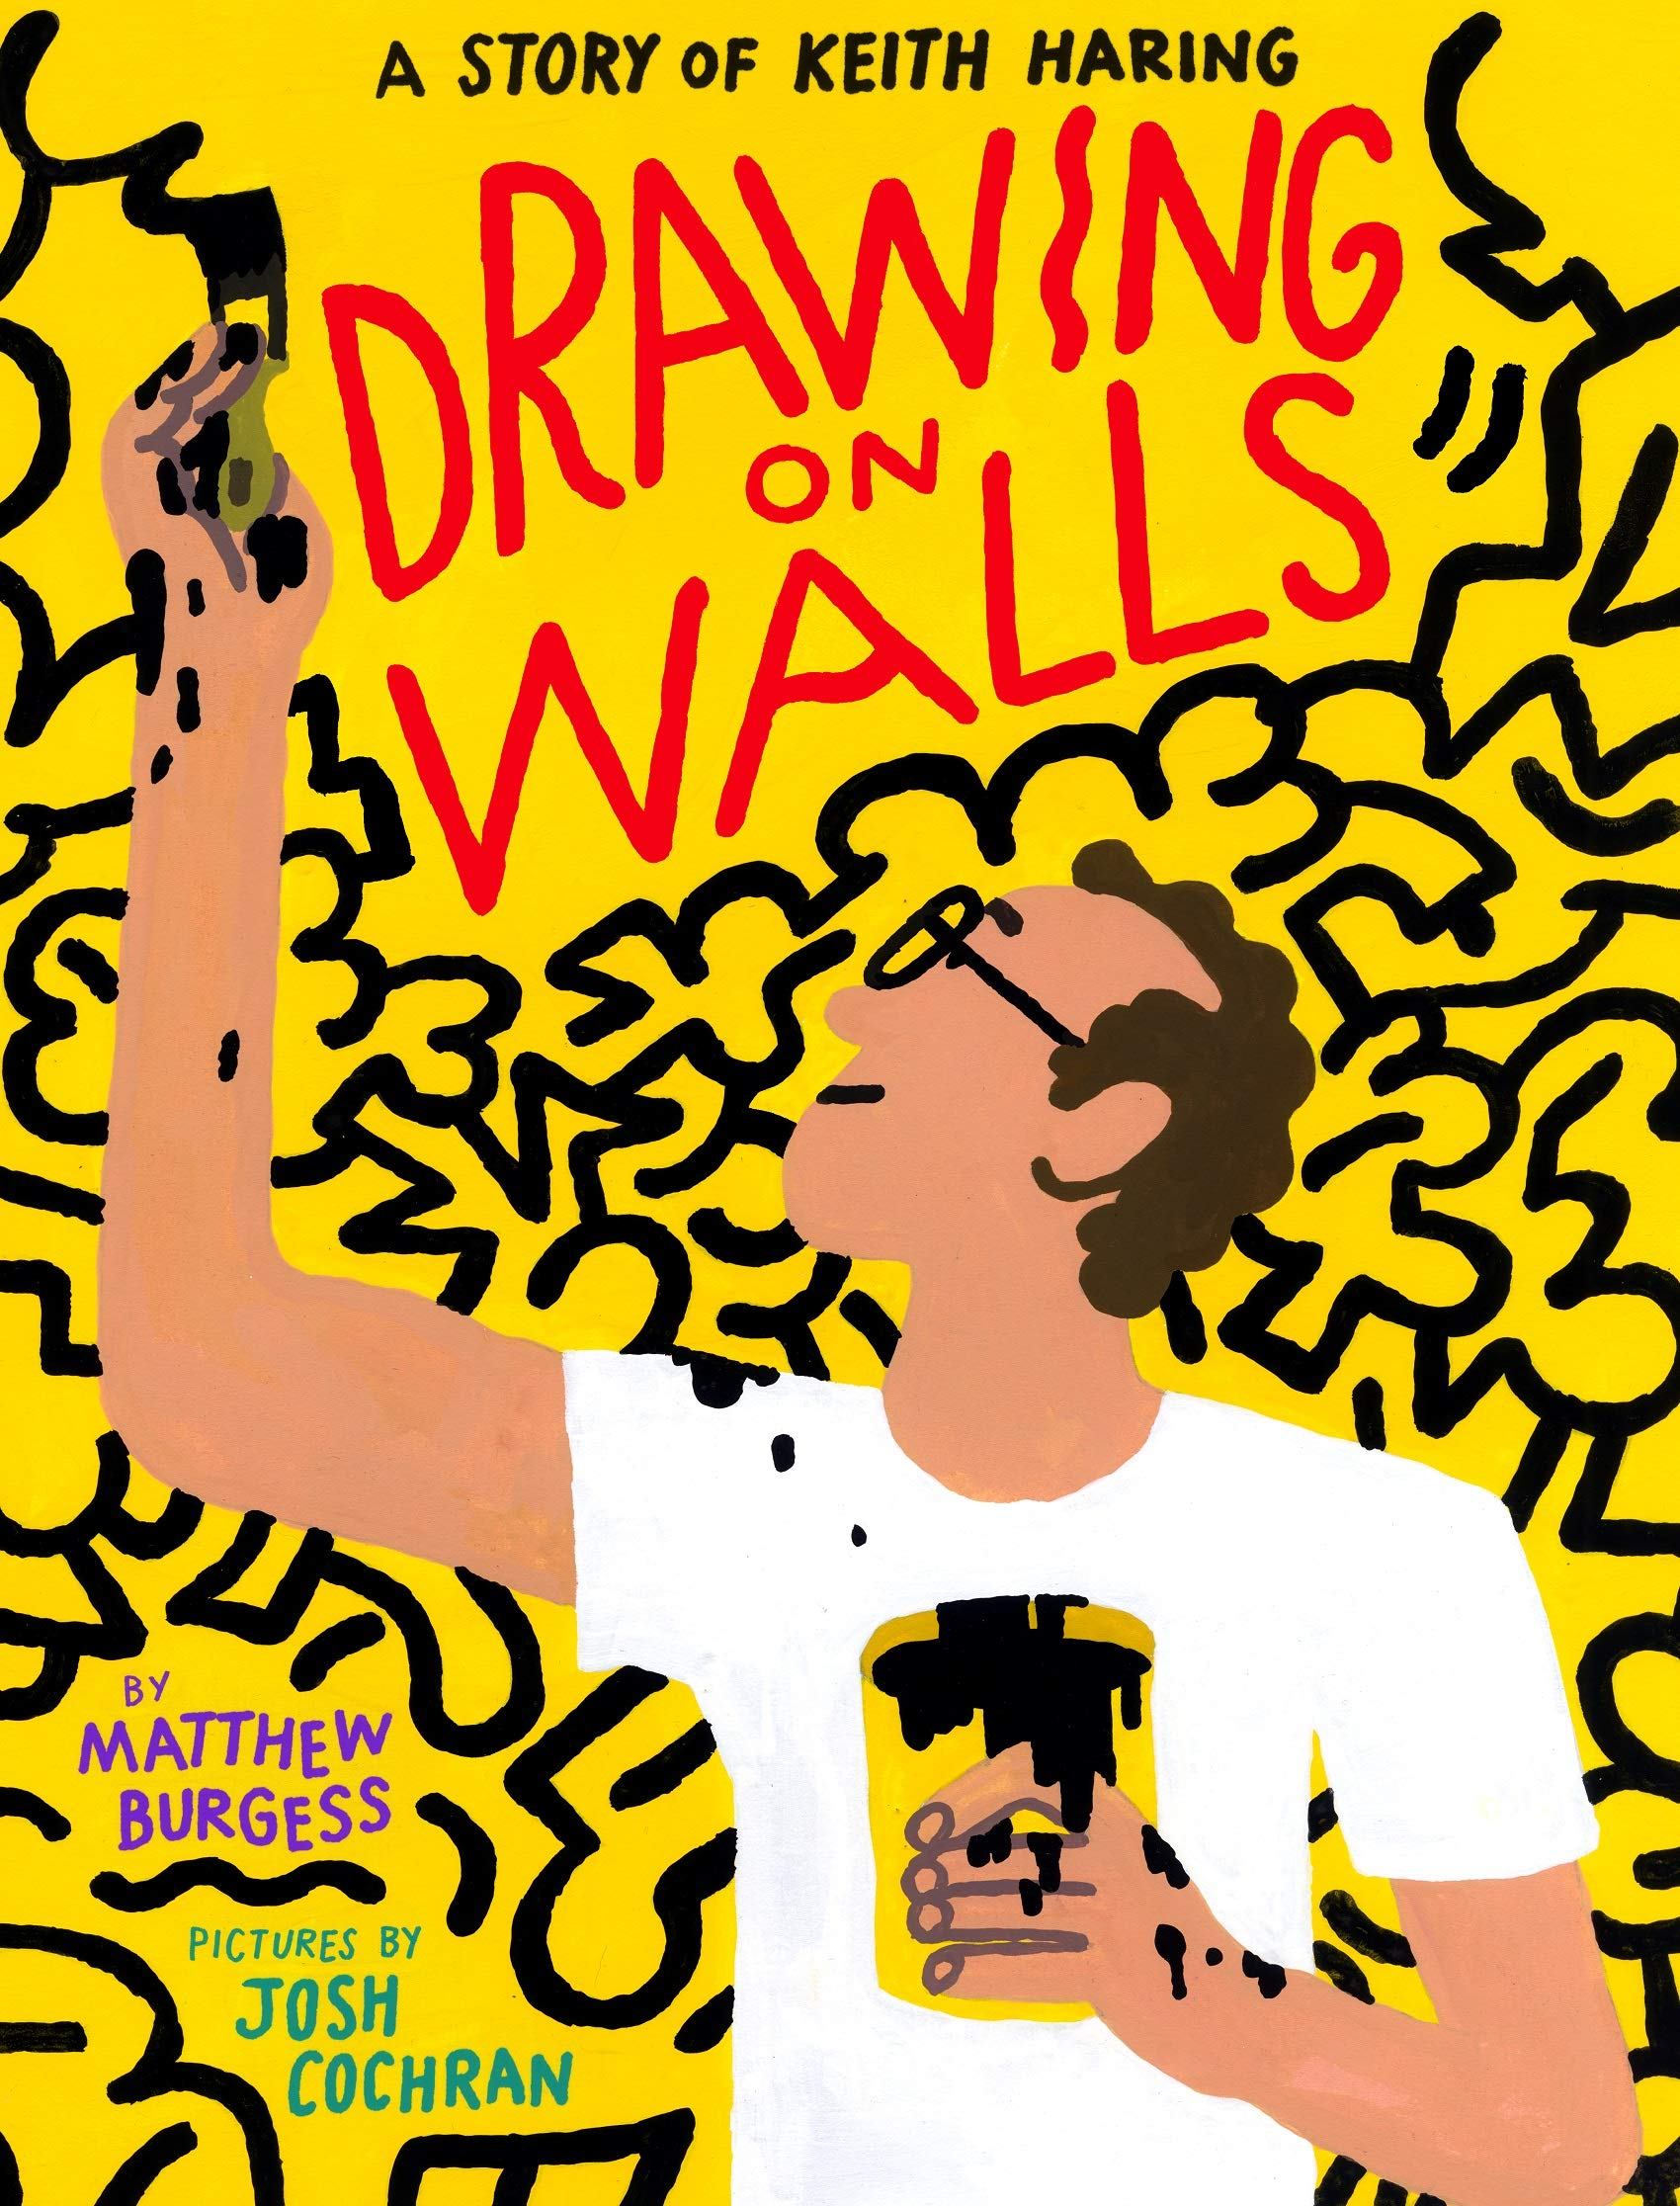 cover of Matthew Burgess and Josh Cochran(illus.)	Drawing On Walls: A Story of Keith Haring. Enchanted Lion Books, 2020.	N6537.H348 A4 2020